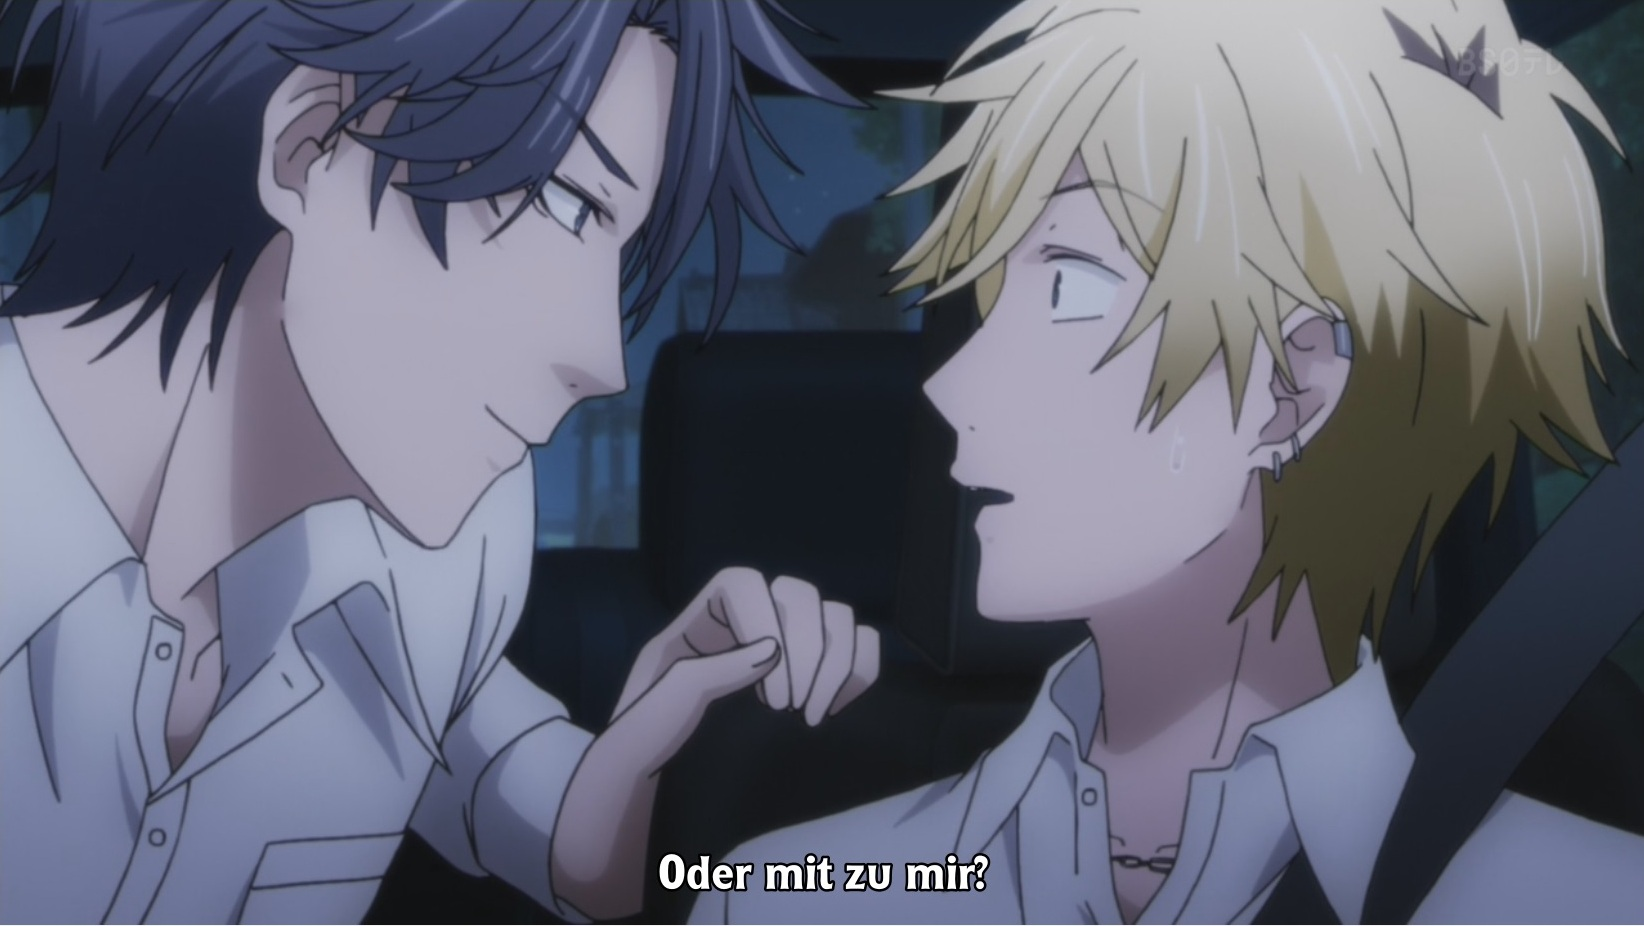 Hitorijime My Hero Folge 4 deutsch